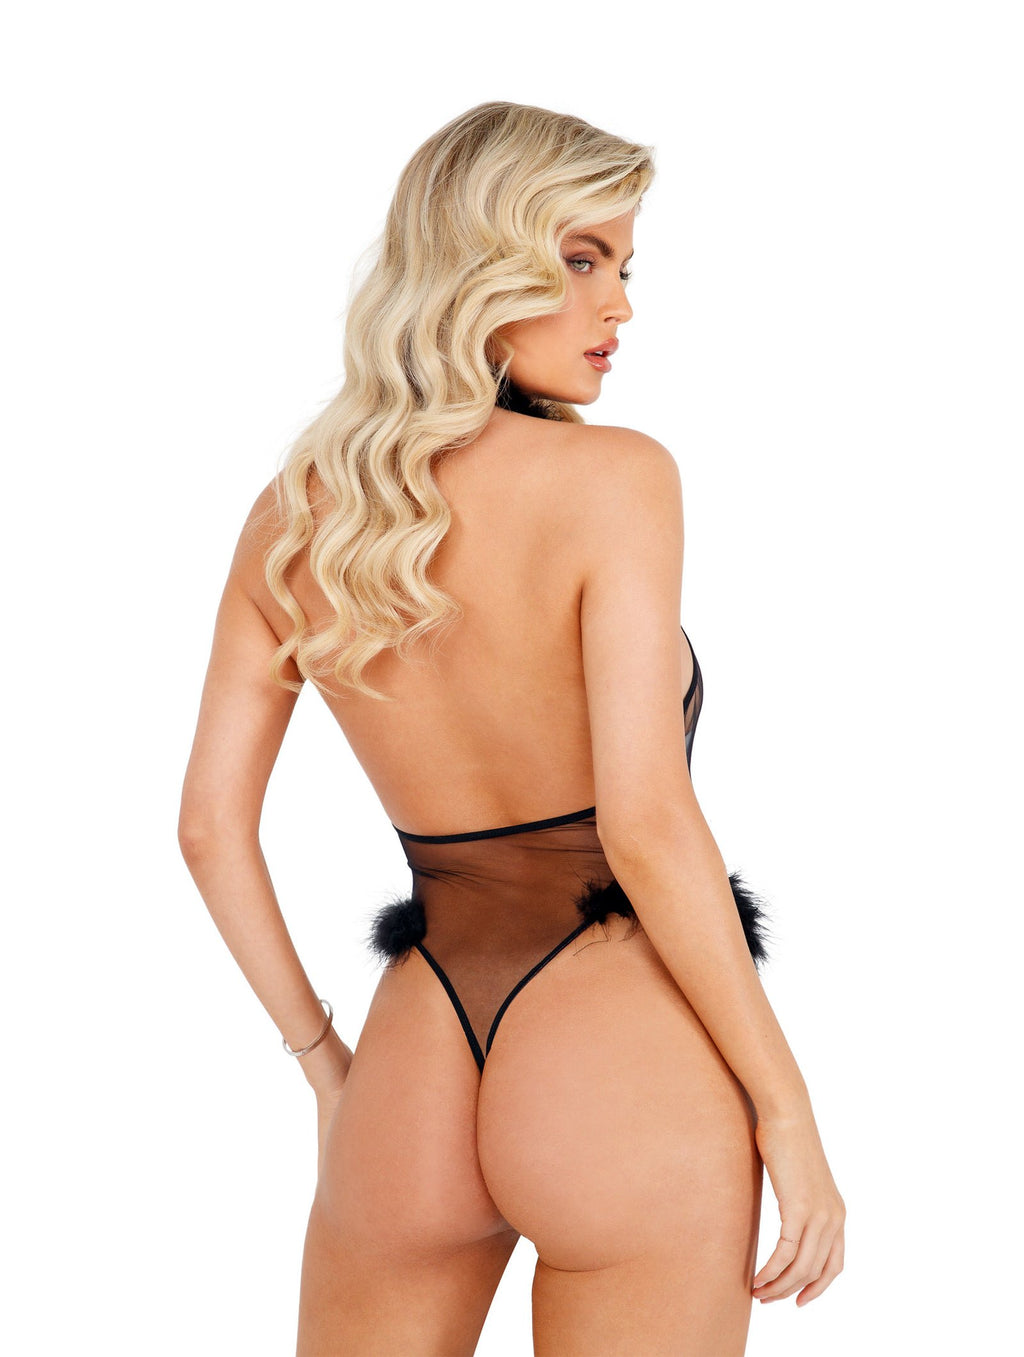 Roma Confidential LI428 - 1pc Marabou Sheer Teddy-Bodysuits & Teddies-Roma-Unspoken Fashion